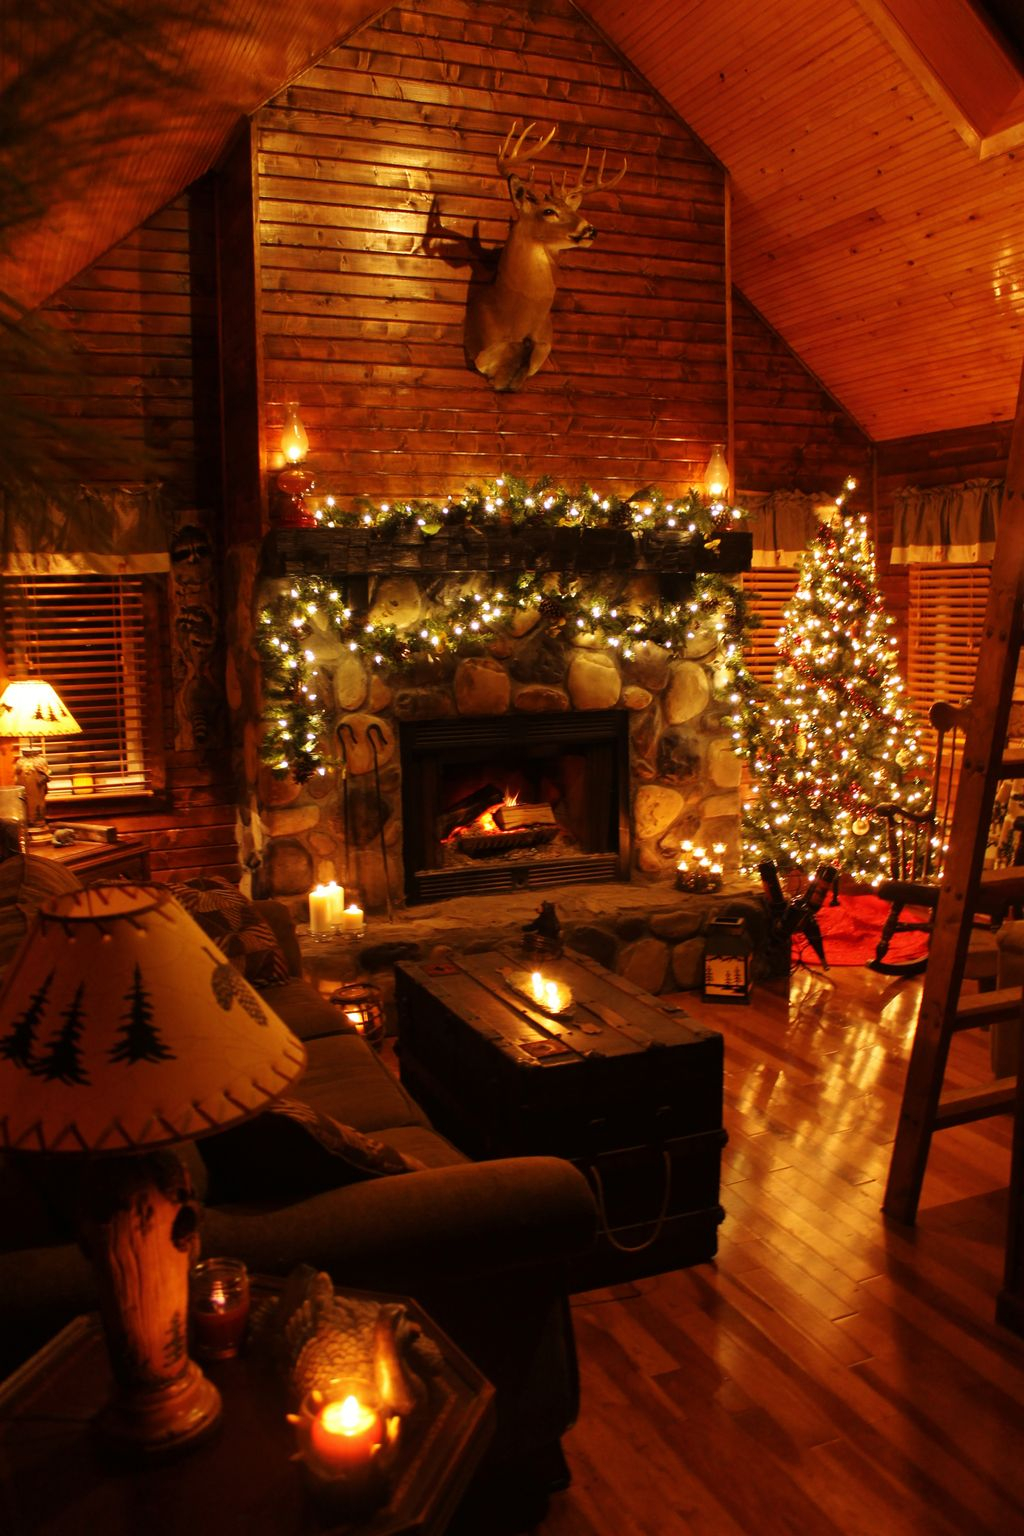 Inspiring Rustic Christmas Fireplace Ideas To Makes Your Home Warmer 15